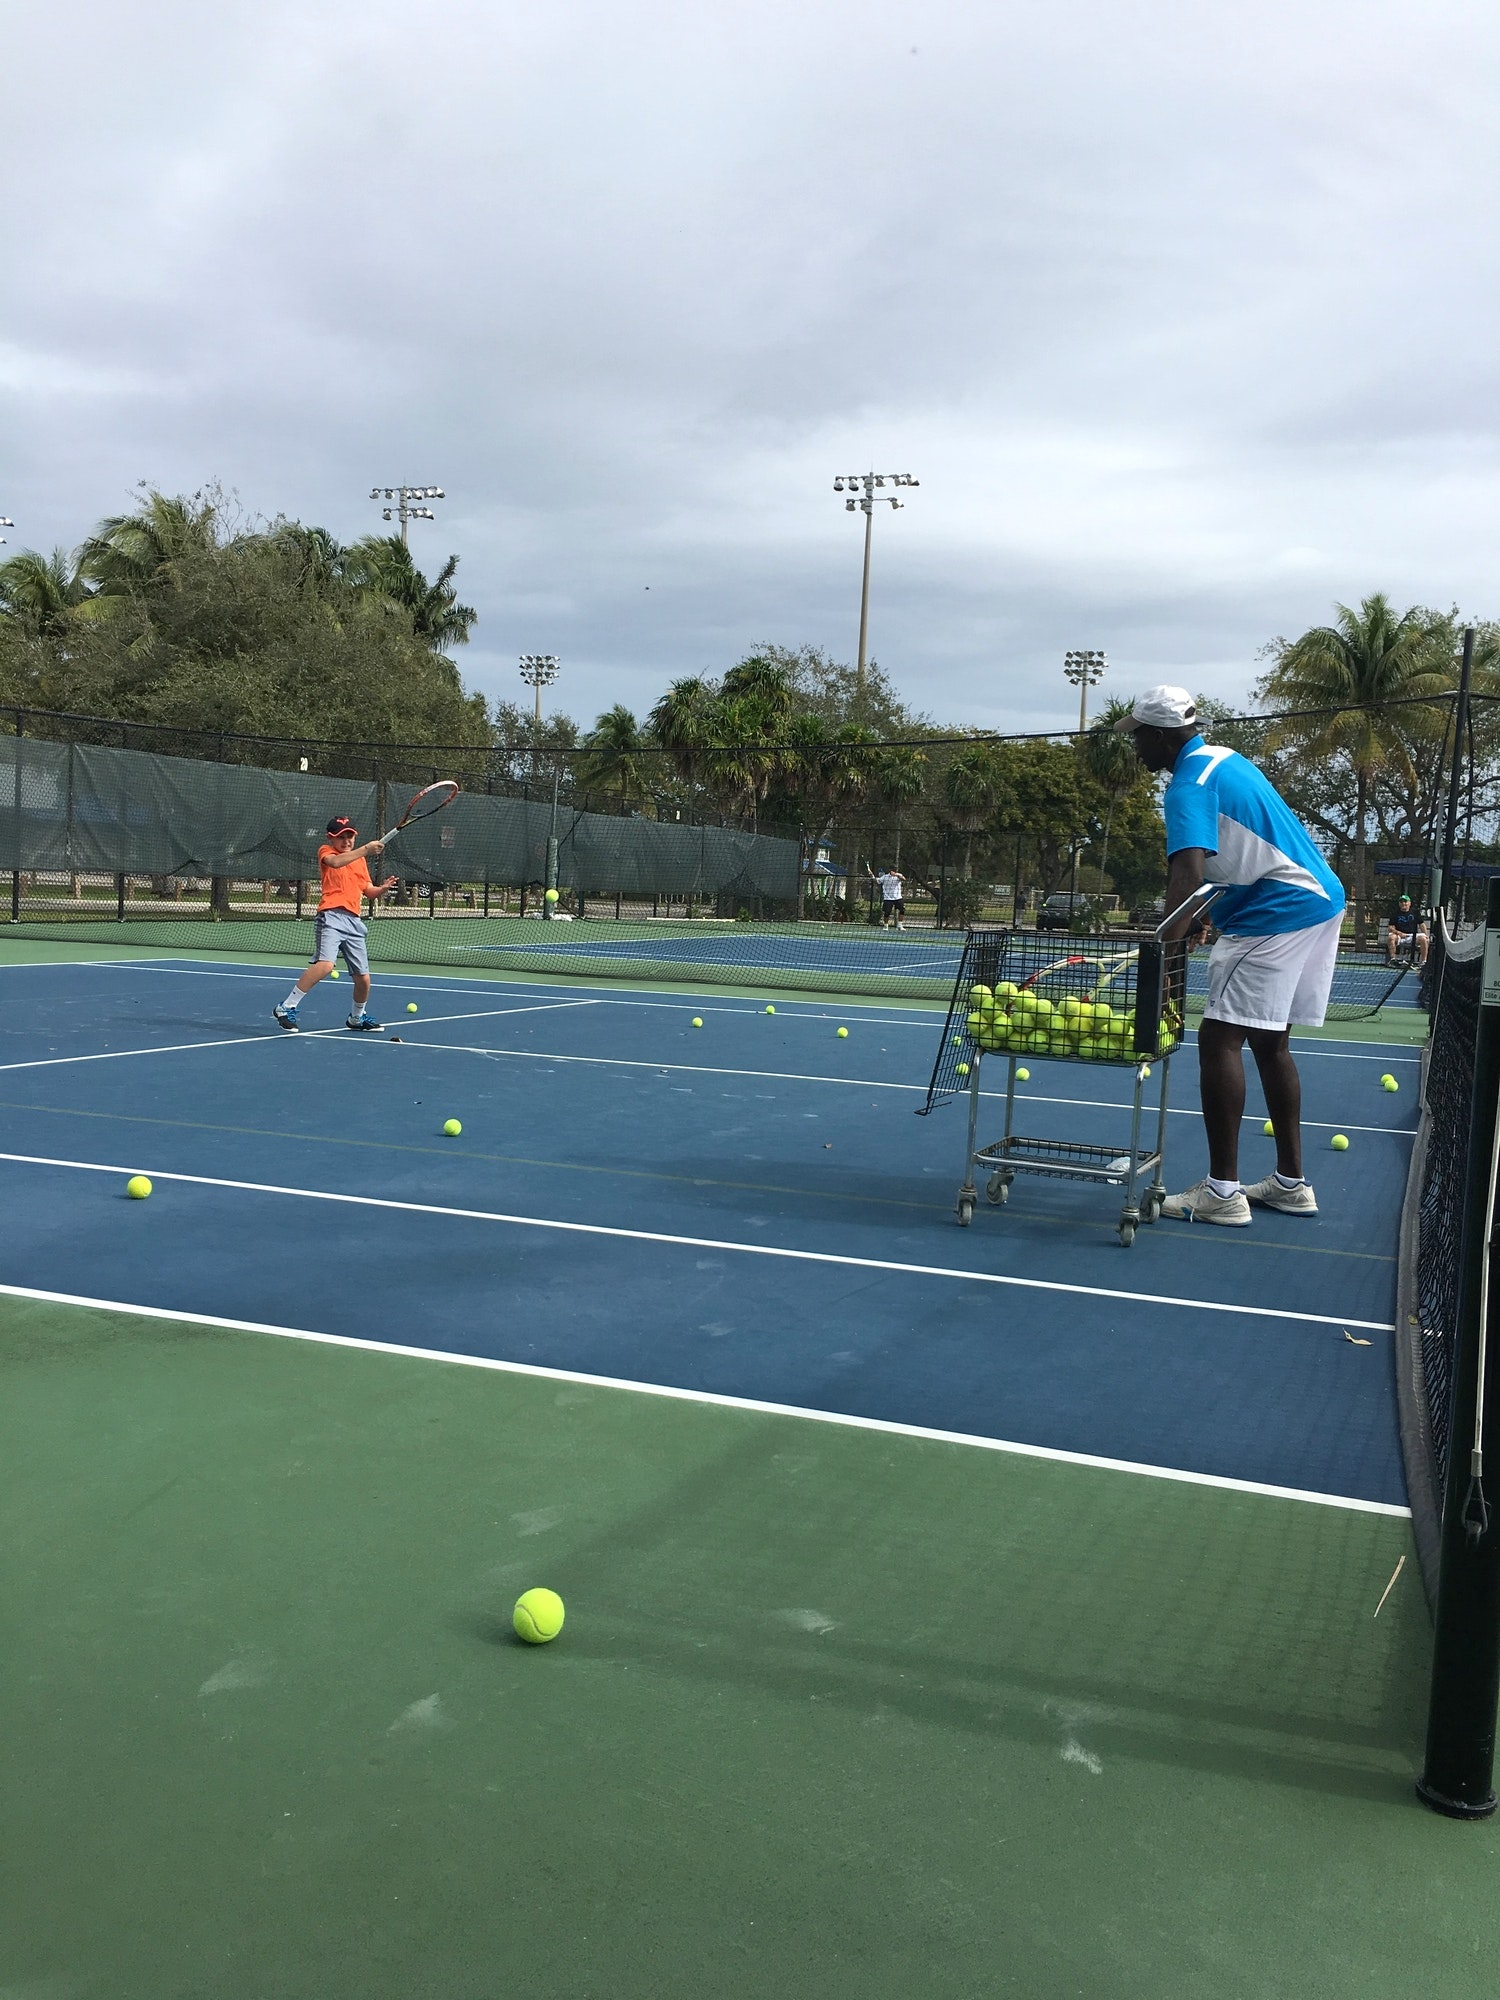 Keith S. teaches tennis lessons in Fort Lauderdale, FL